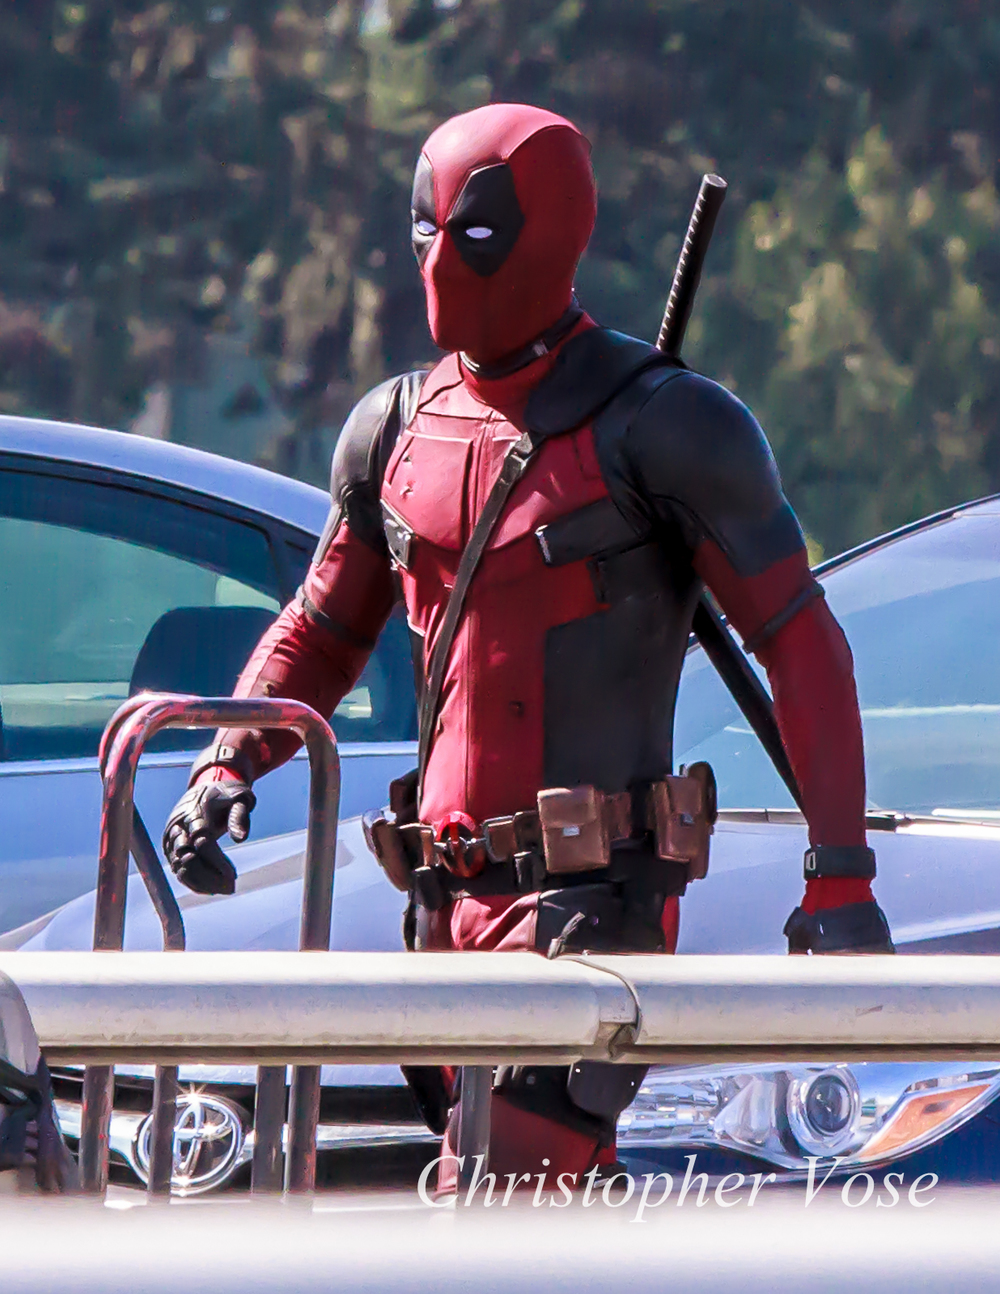 Ryan Reynolds in costume and on the set of Deadpool.